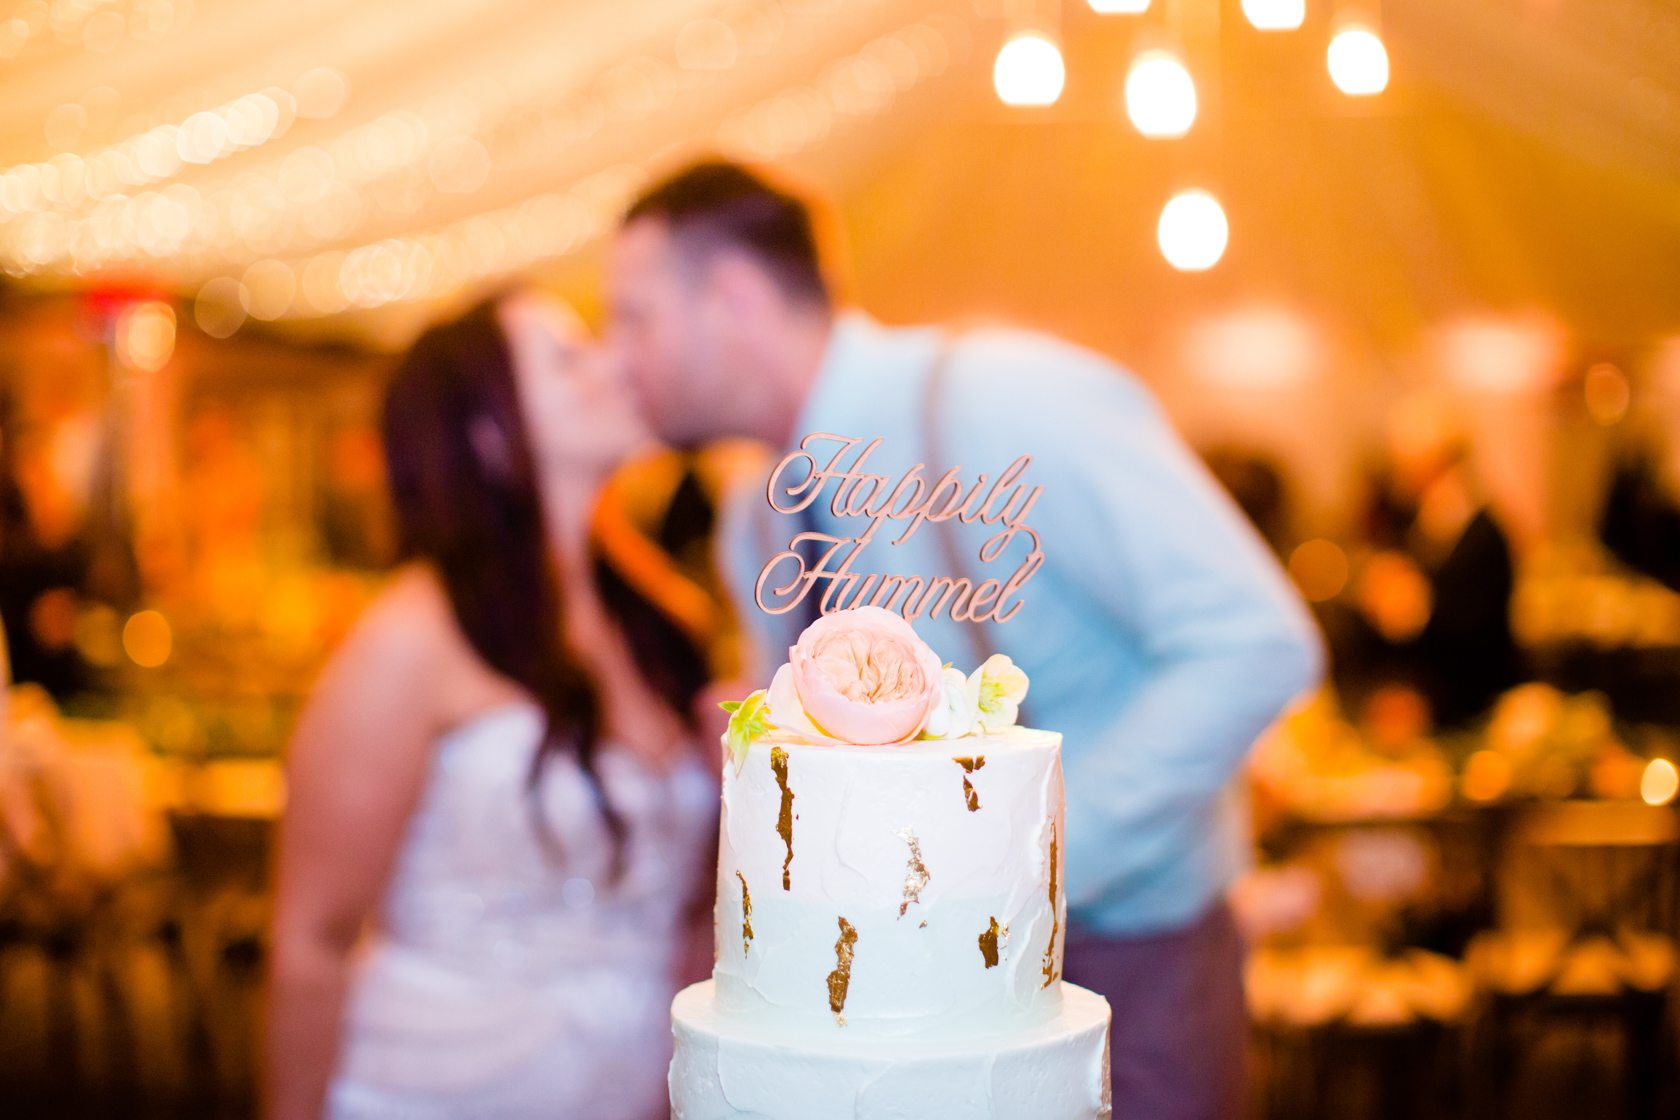 The_Printed_Palette_Wedding_at_Calamigos_Ranch_128.jpg